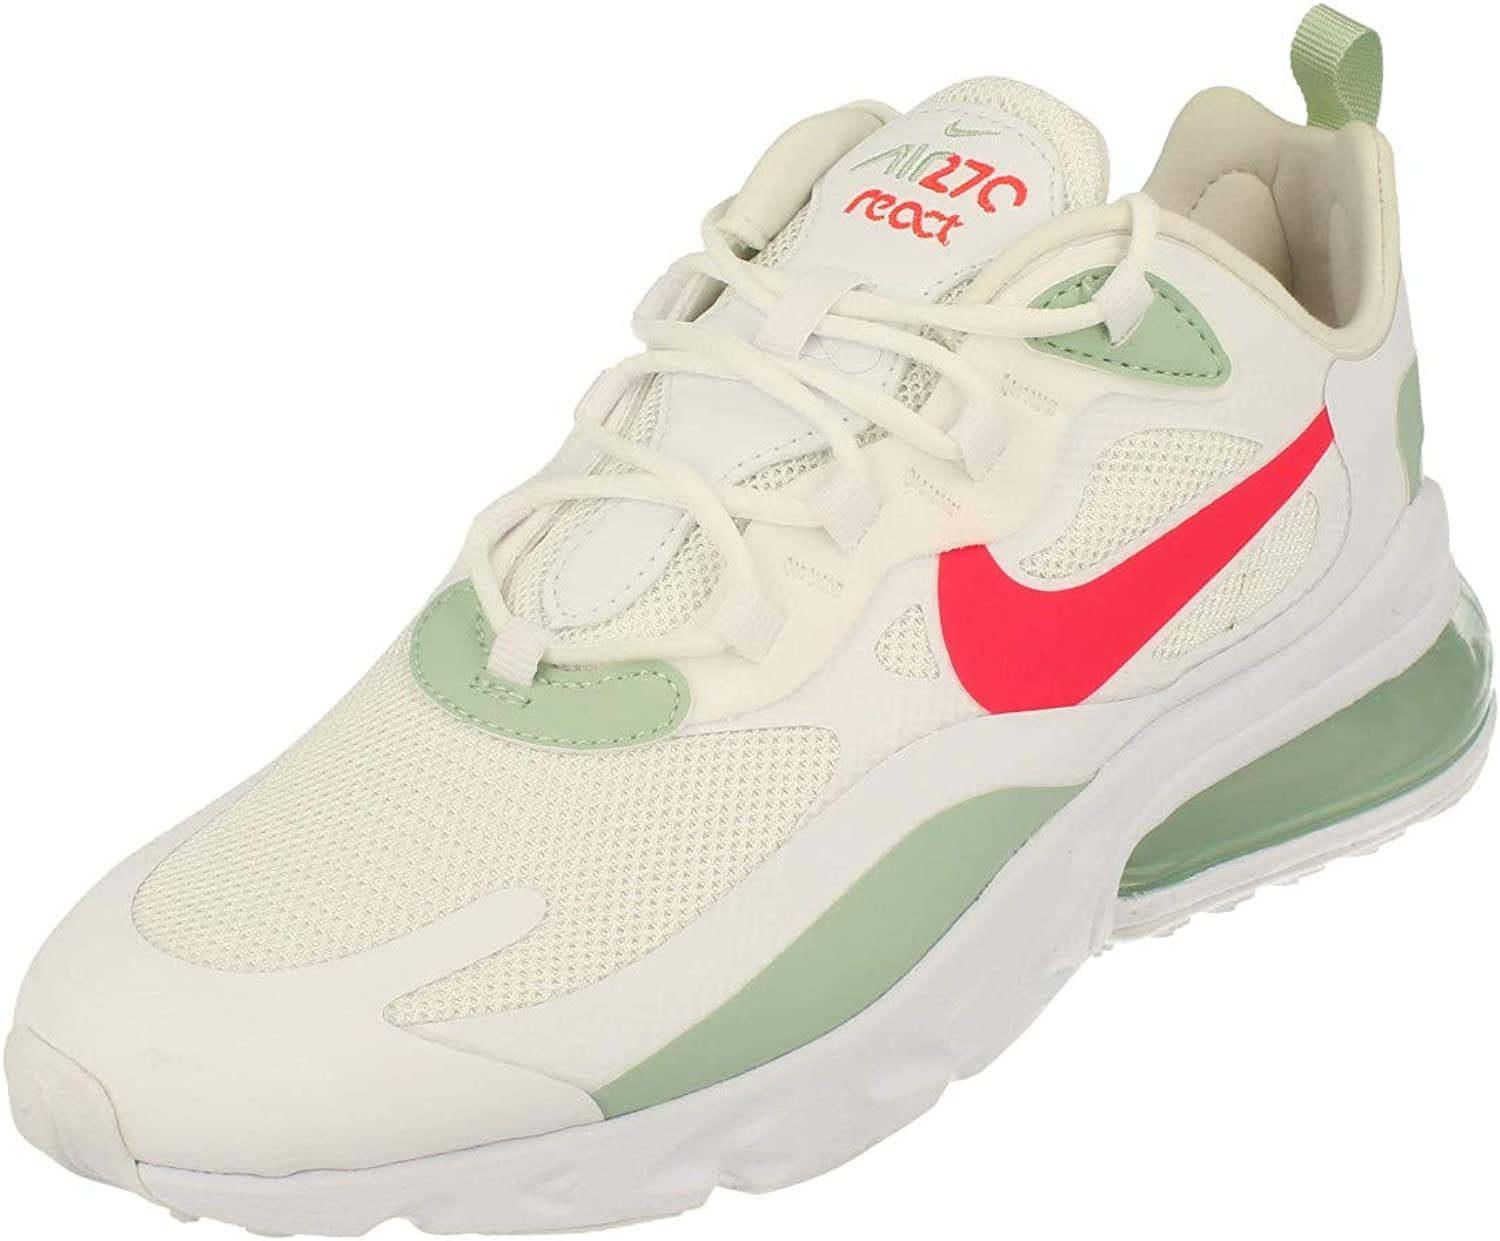 Nike Air Max New Orleans Mall 270 Washington Mall React Womens Cv3025 S Trainers Sneakers Running